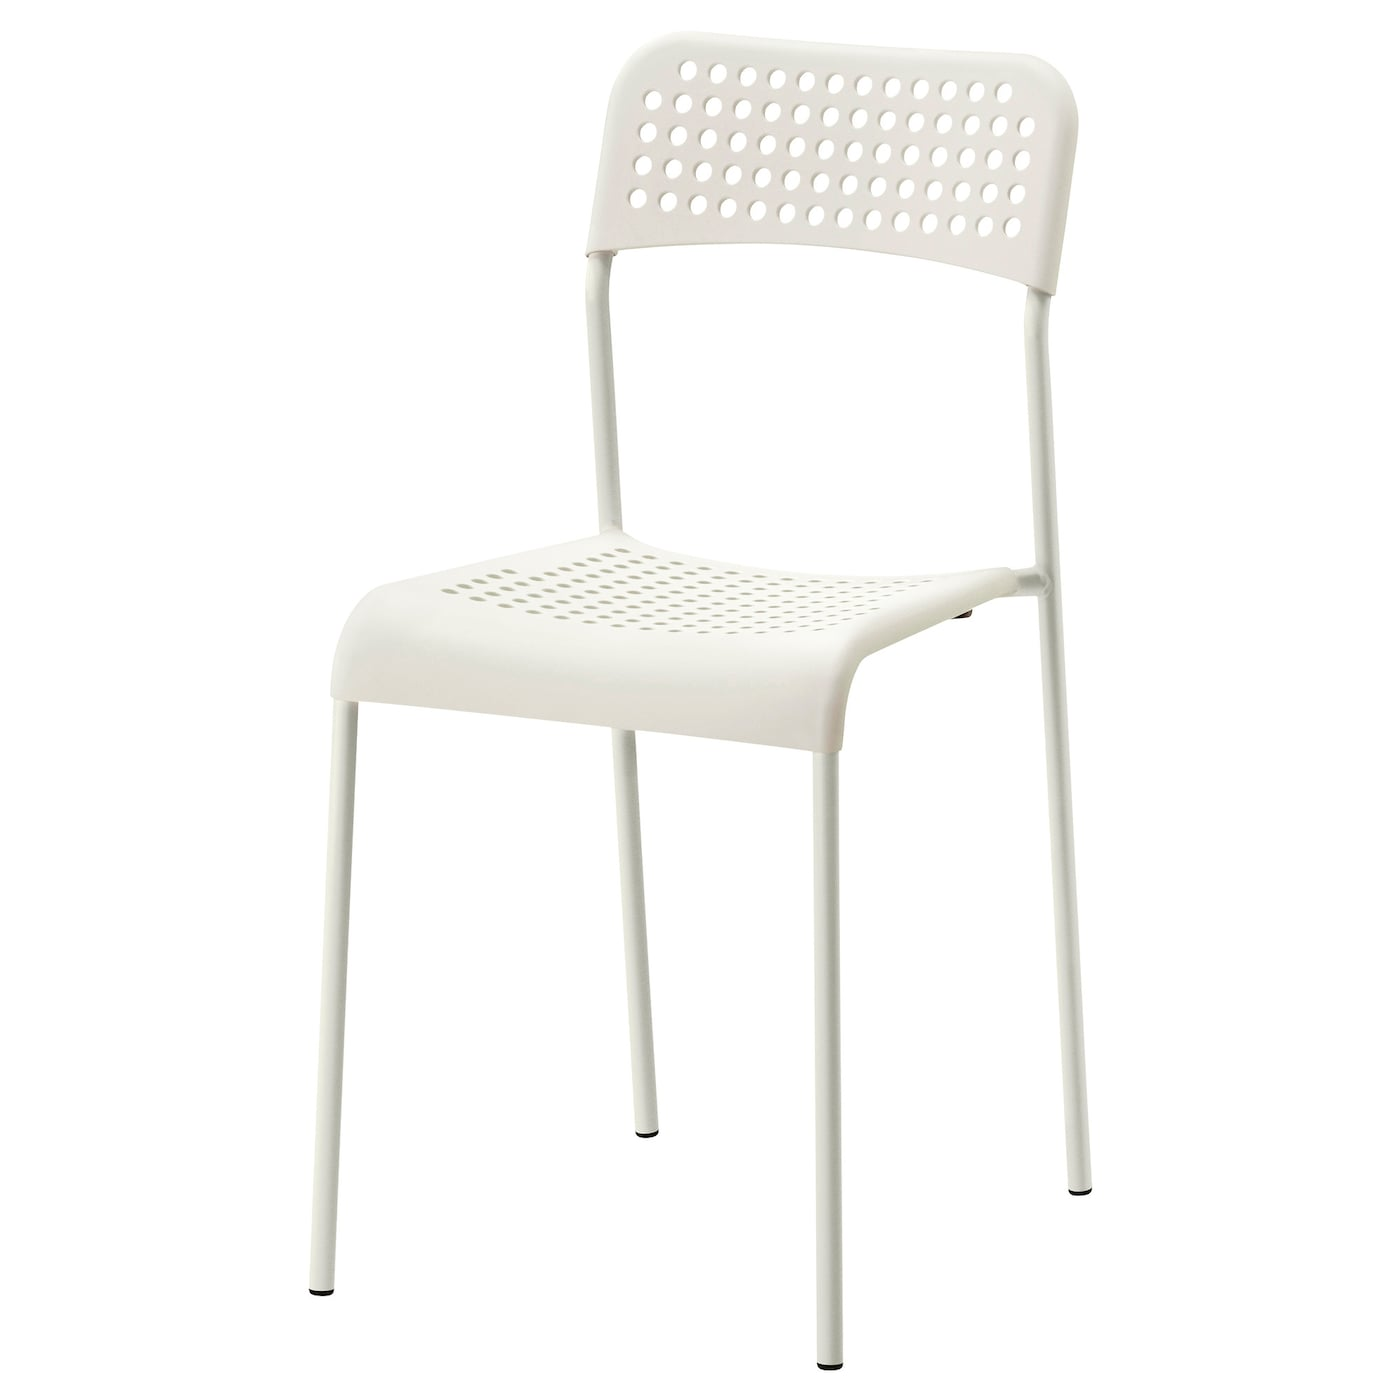 Ikea Adde Chair You Can Stack The Chairs So They Take Less E When